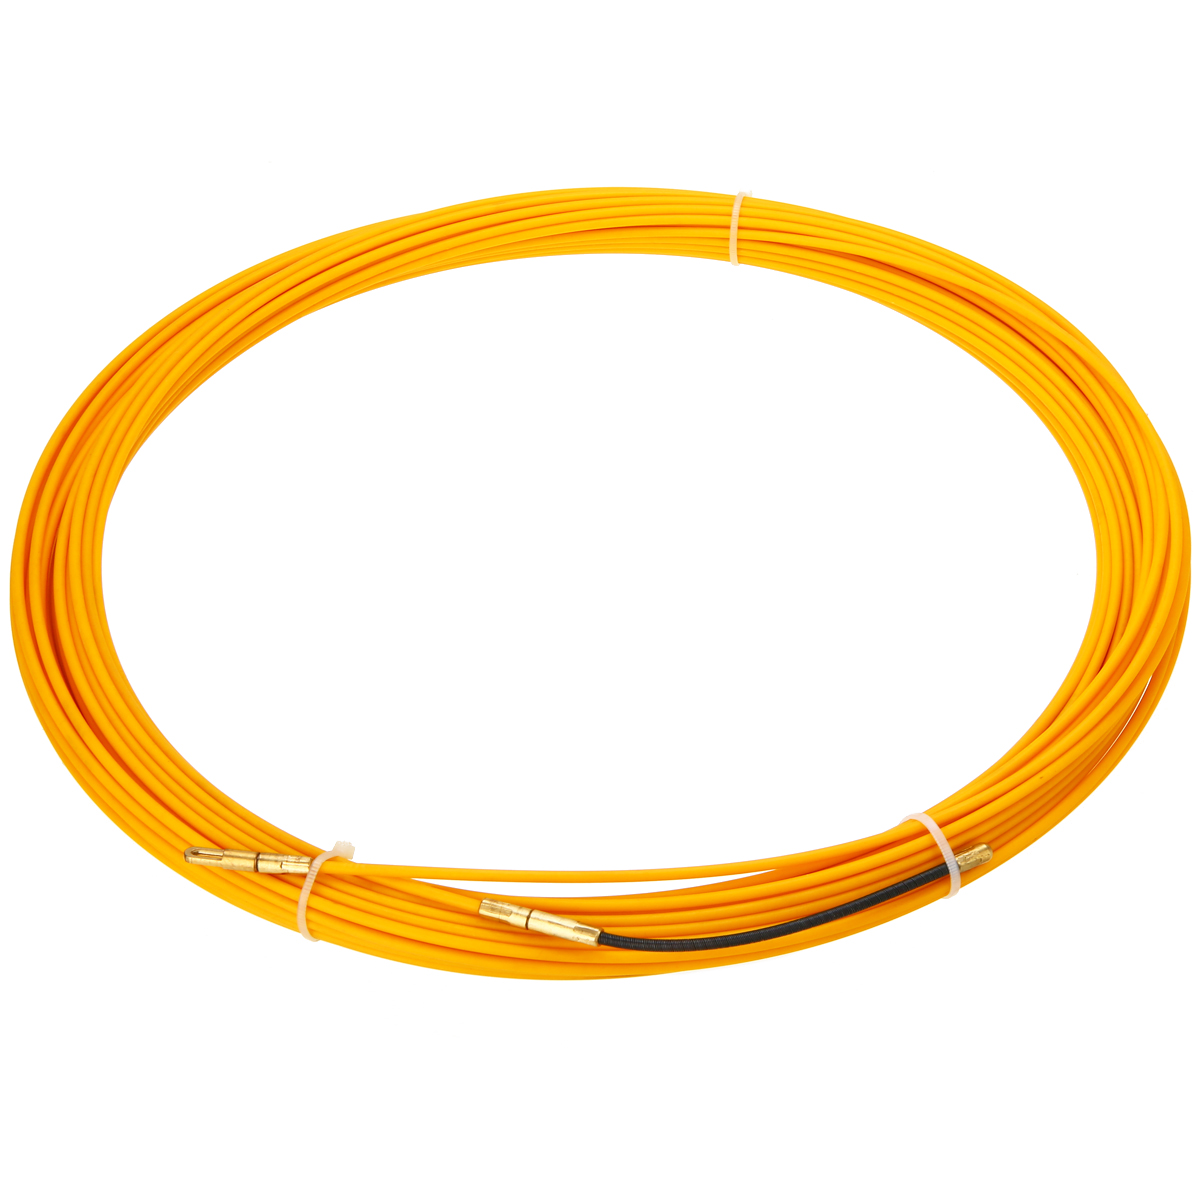 New 30M 3mm Guide Device Fiberglass Electric Cable Push Pullers Duct Snake Rodder Fish Tape Wire Mayitr YellowNew 30M 3mm Guide Device Fiberglass Electric Cable Push Pullers Duct Snake Rodder Fish Tape Wire Mayitr Yellow